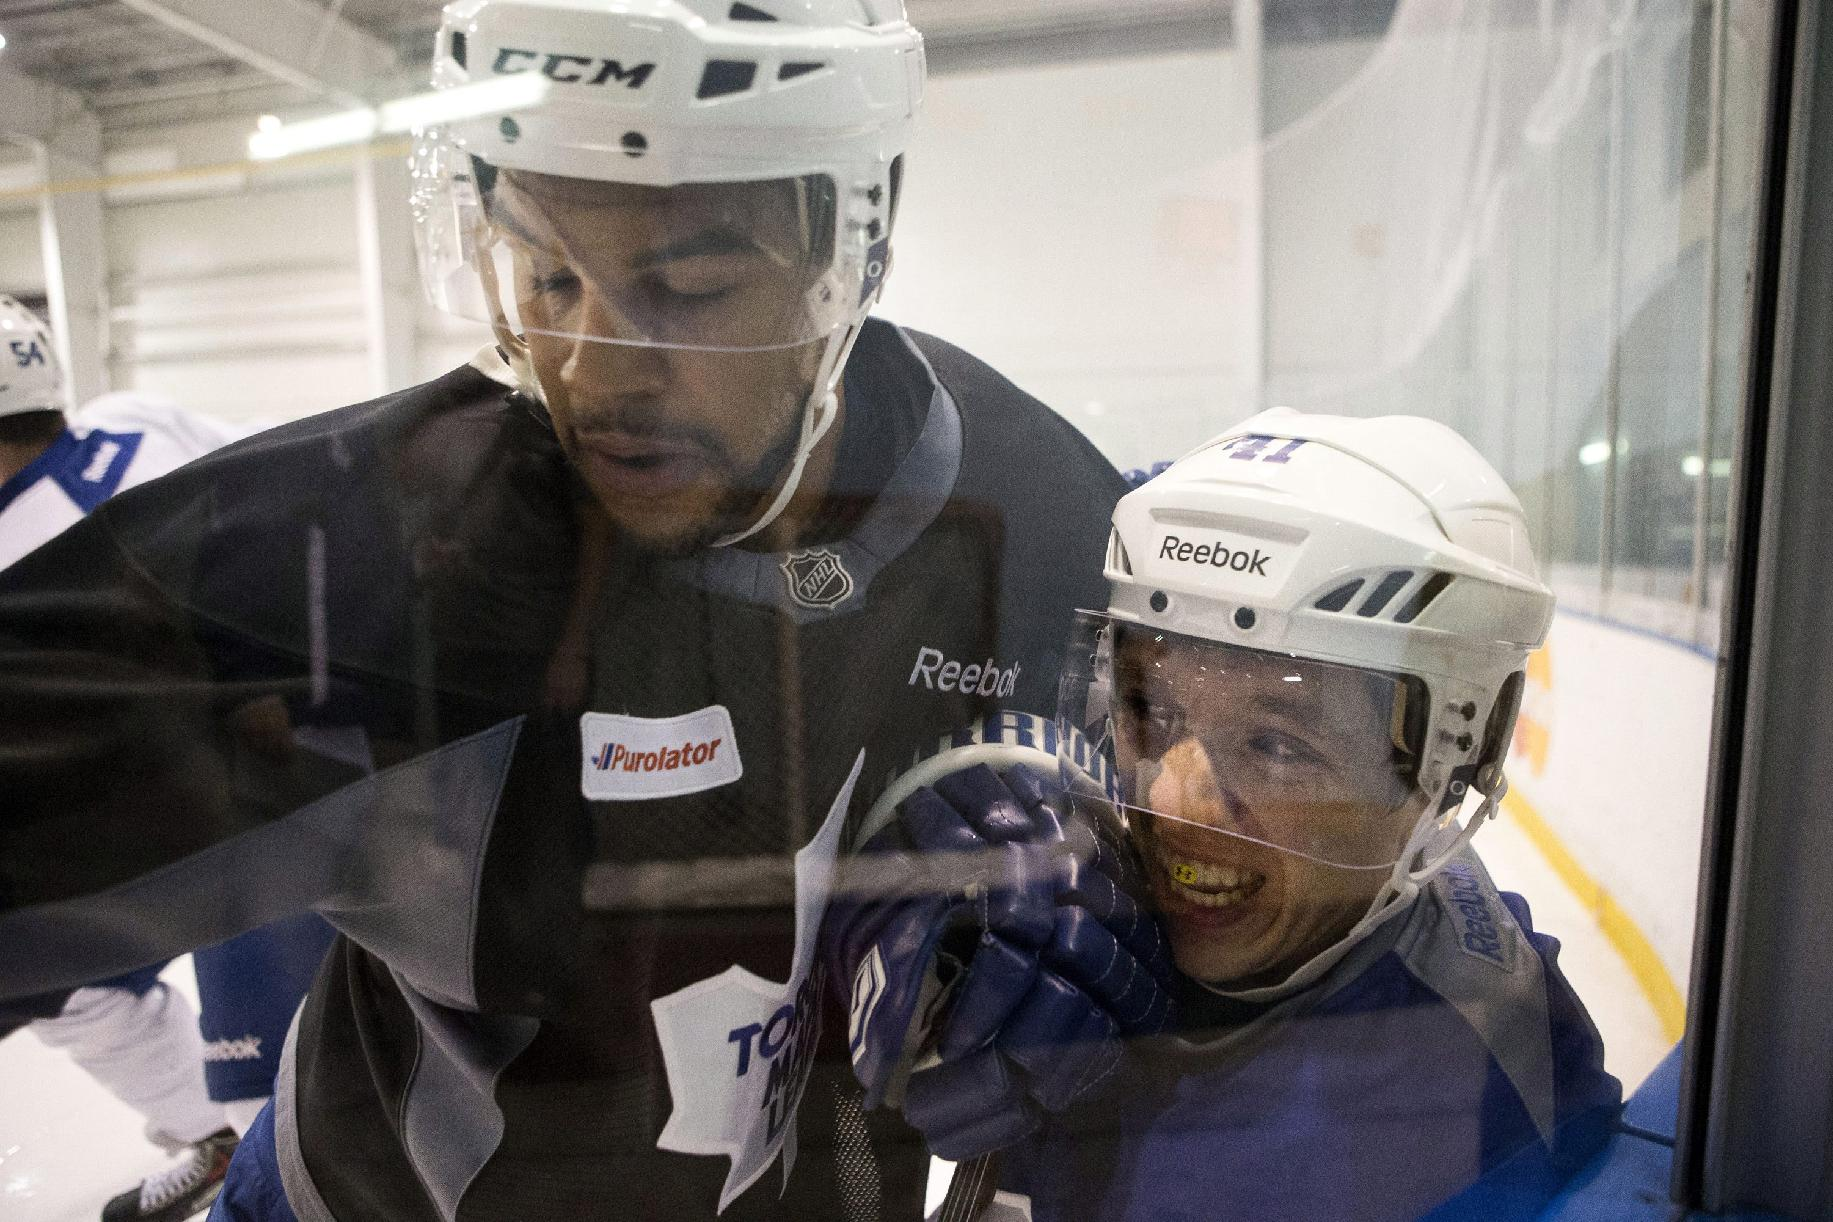 Toronto Maple Leafs' Nikolai Kulemin, left, battles along the boards with Mark Fraser during a scrimmage at NHL hockey training camp in Toronto on Friday, Sept. 13, 2013